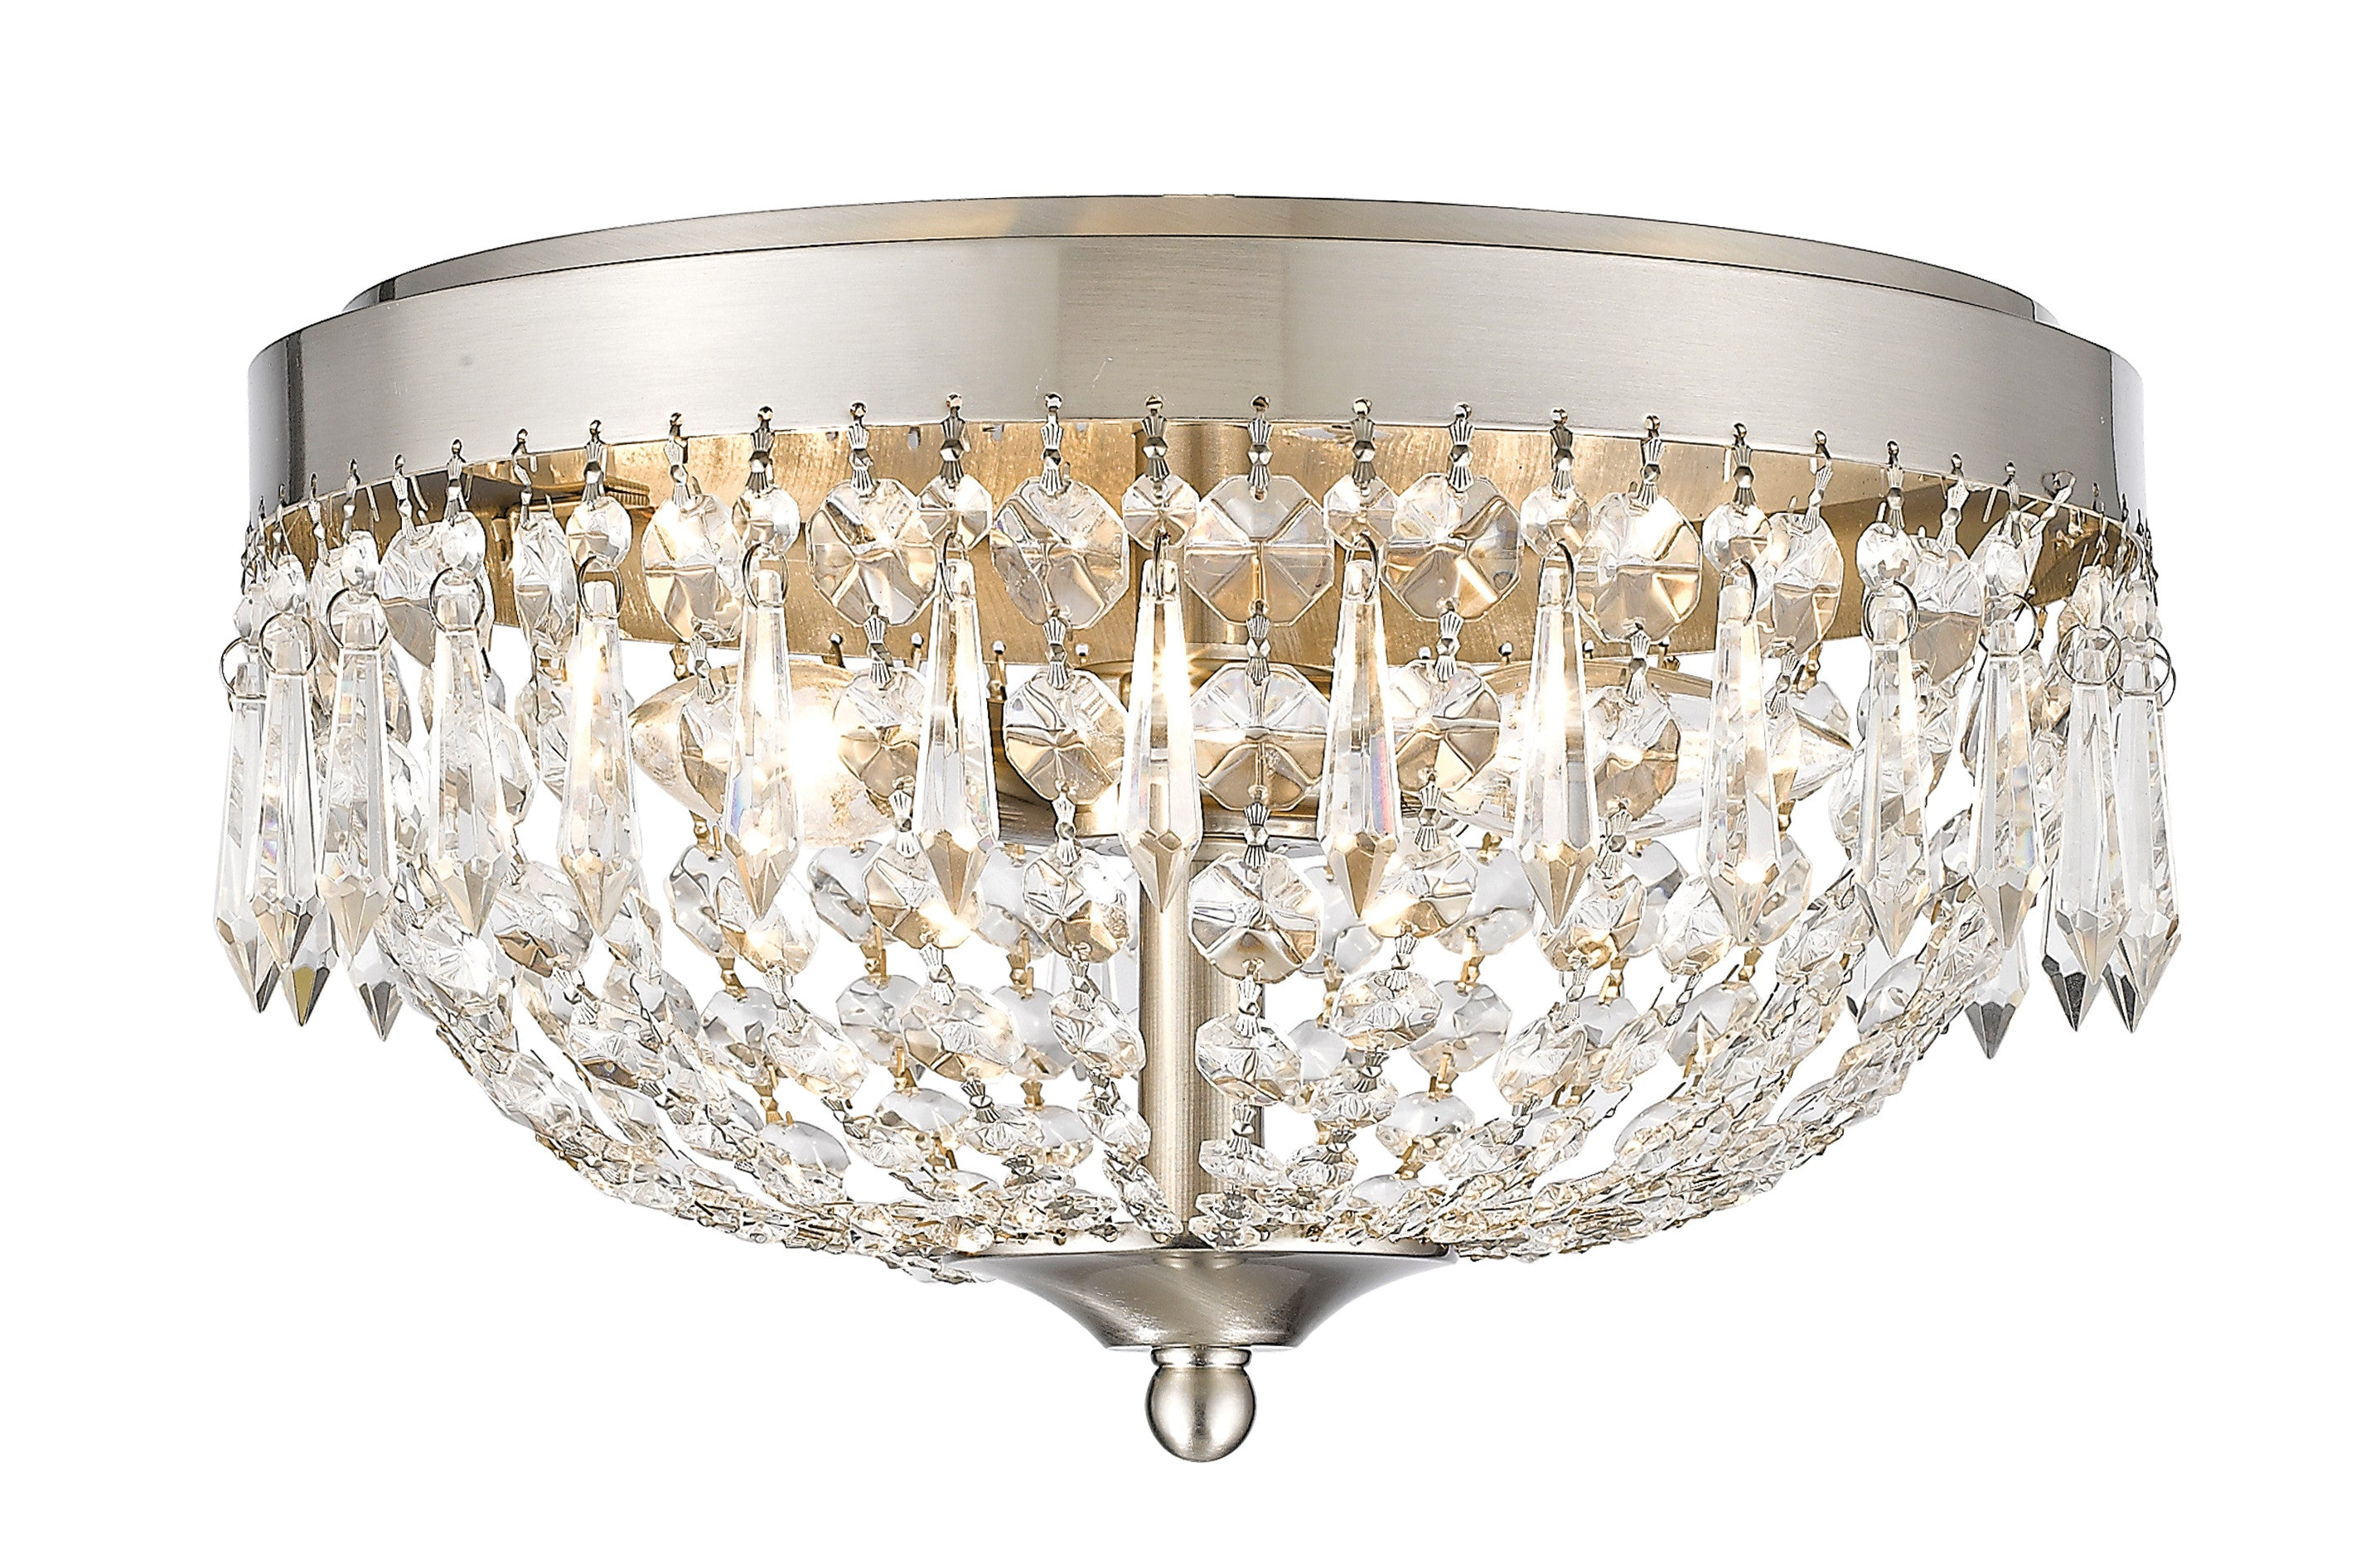 fixture decoration stylish shade crystal brushed best stained kitchen room frame light showcasing round decor stainless excellent nickel lamp home lights using as elegant in beautiful glass des panel polished ceilings flush for steel and mount adorable semi design ideas ceiling with recessed glamorous